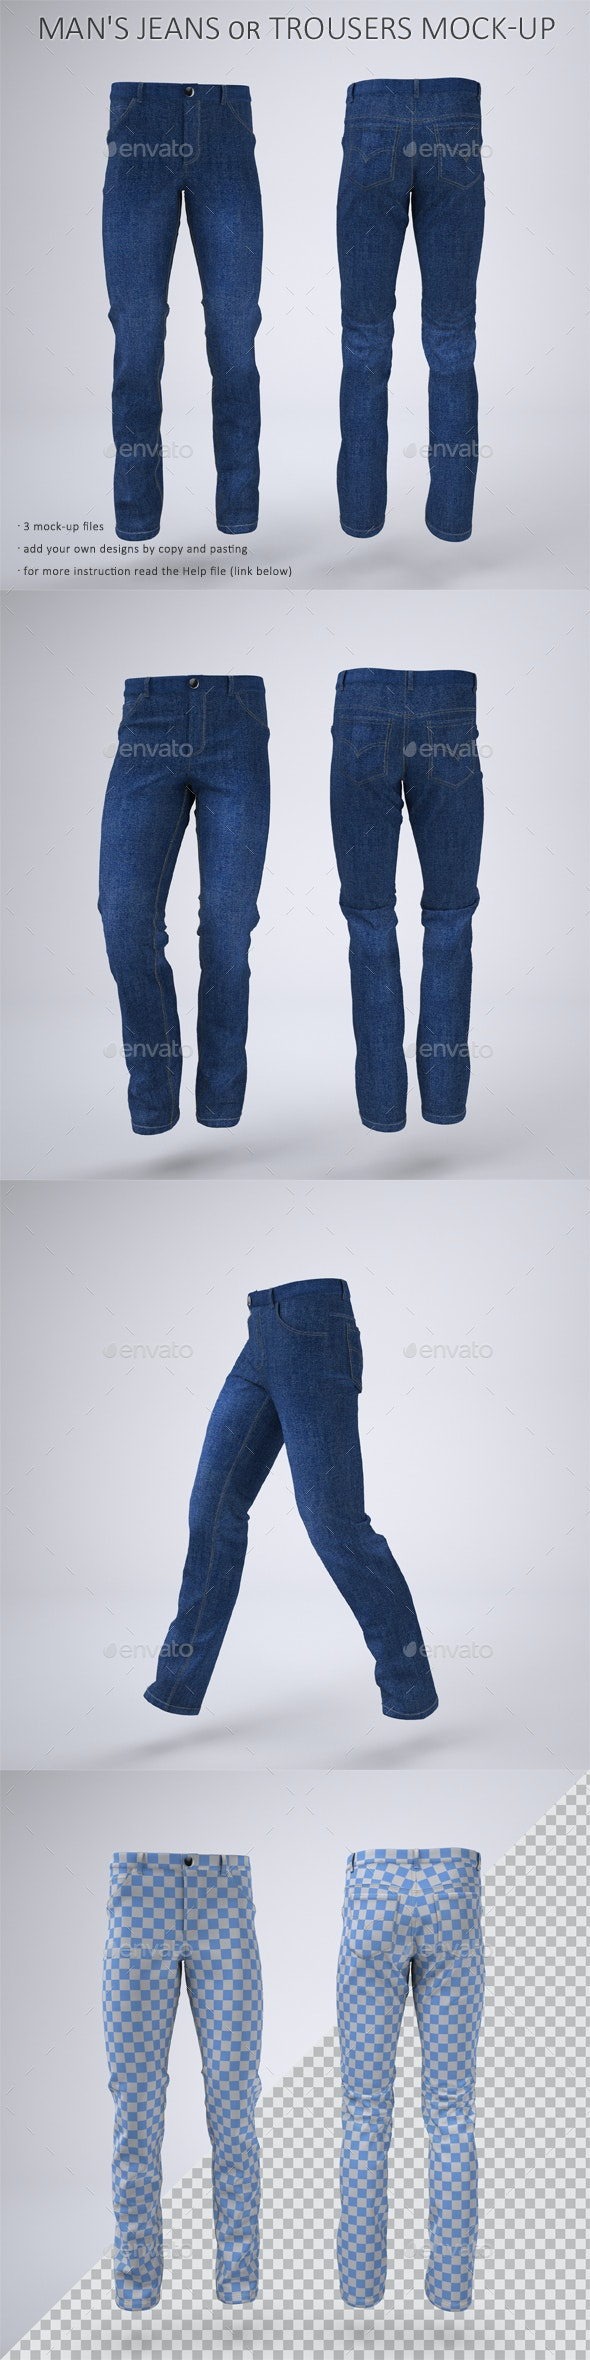 Man's Denim Jeans or Trousers Mock-Up - Apparel Product Mock-Ups